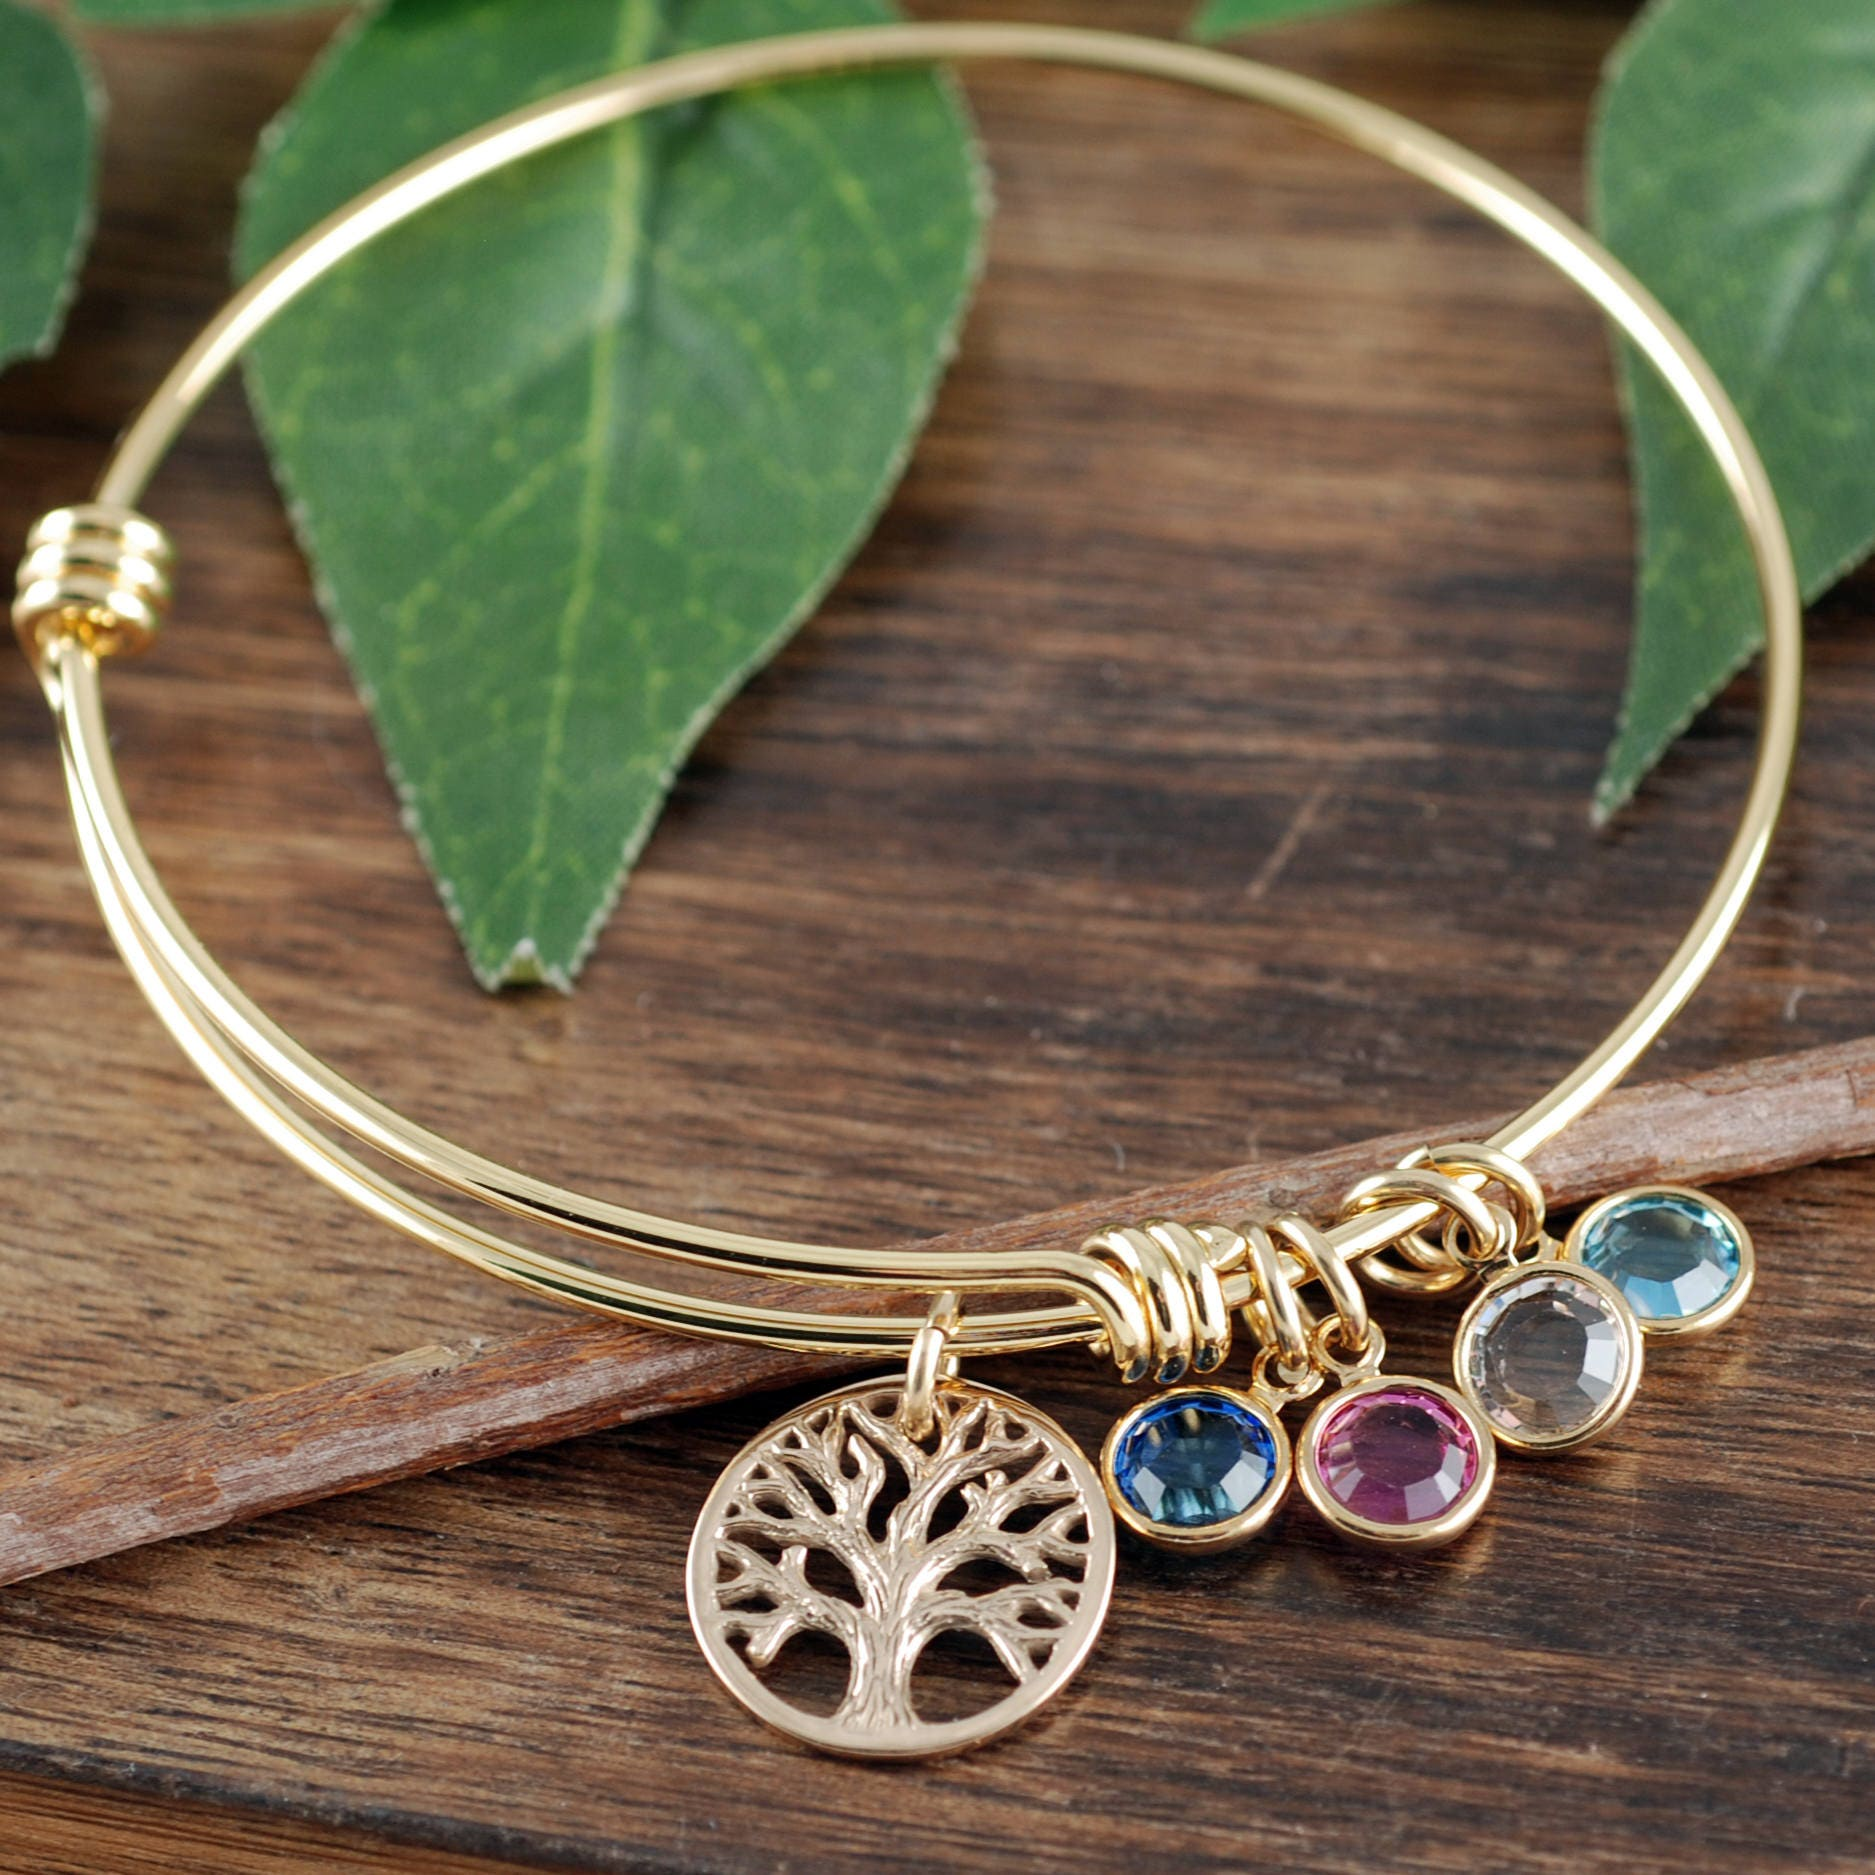 bfd1665a6c29 Gold Family Tree Bracelet with Birthstones